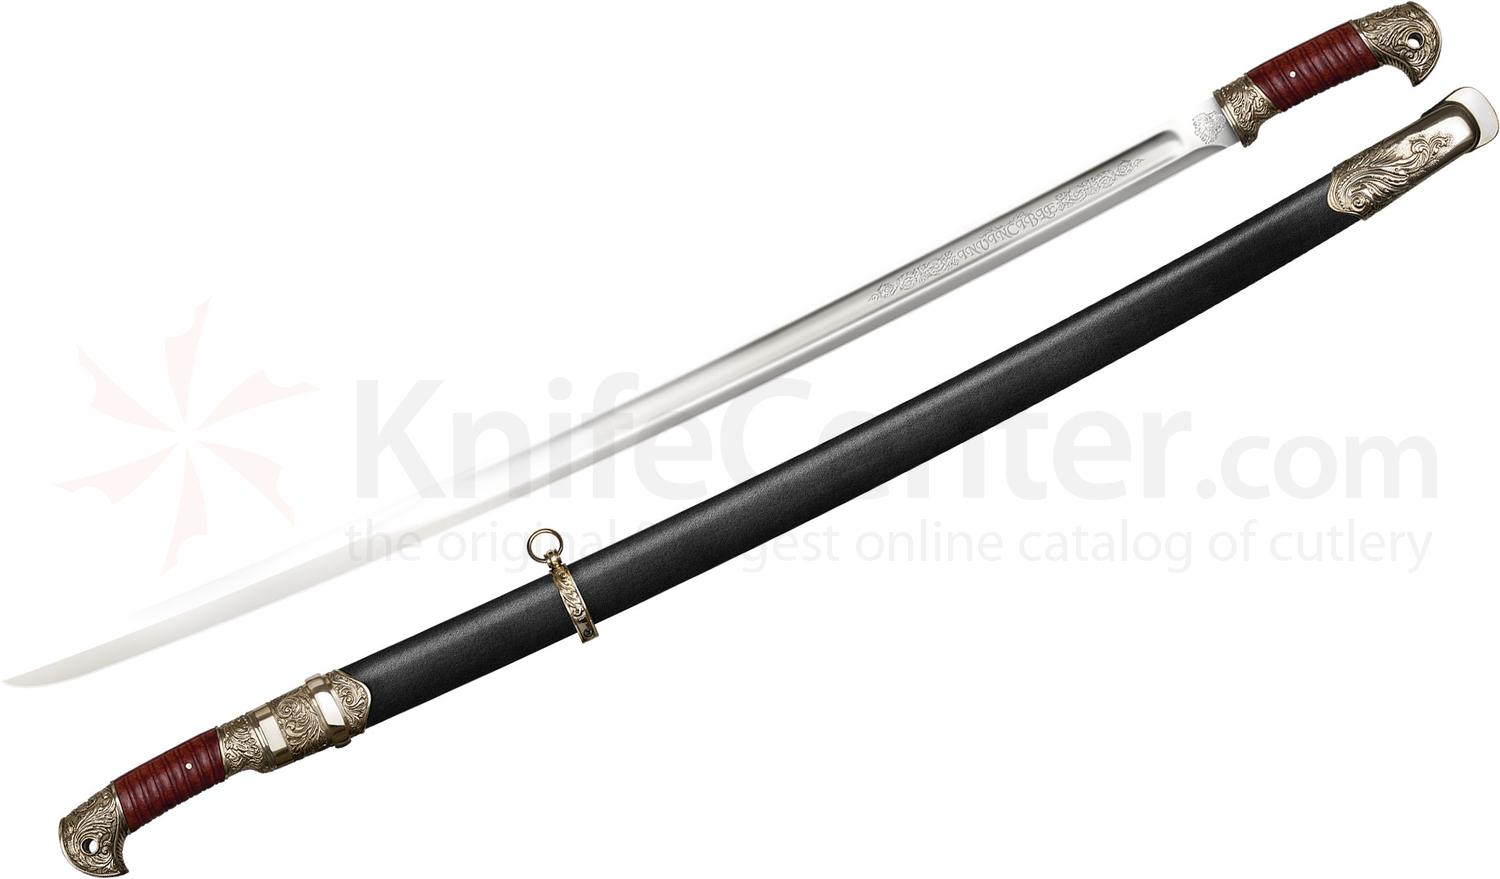 Cold Steel Russian Shasqua Saber 32 inch Carbon Steel Blade, Wood/Leather Scabbard